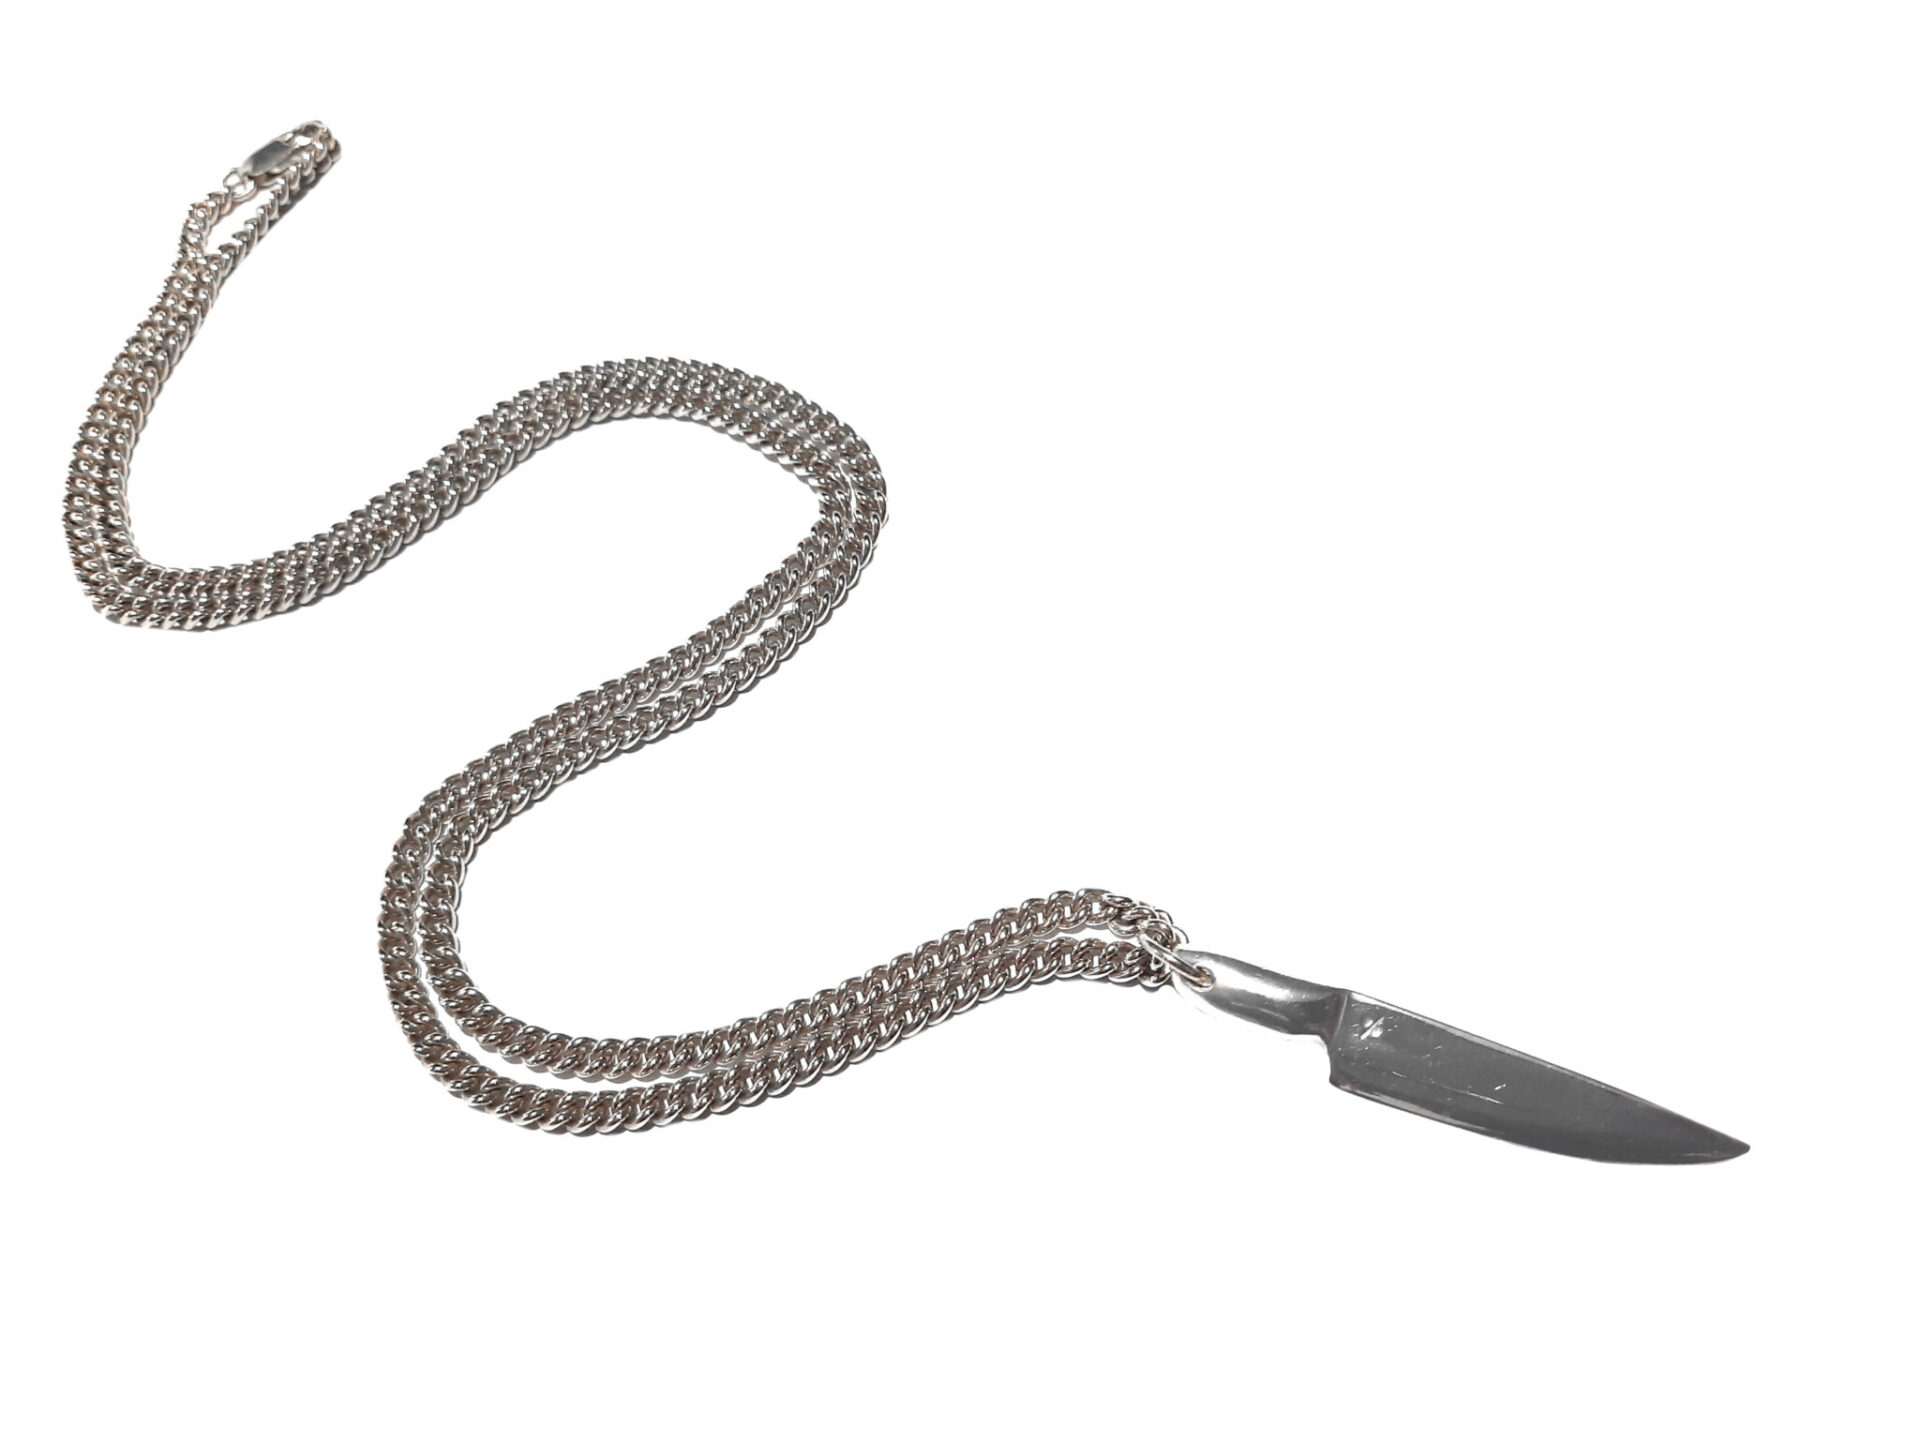 Knife Pendant And Chain By R-Process